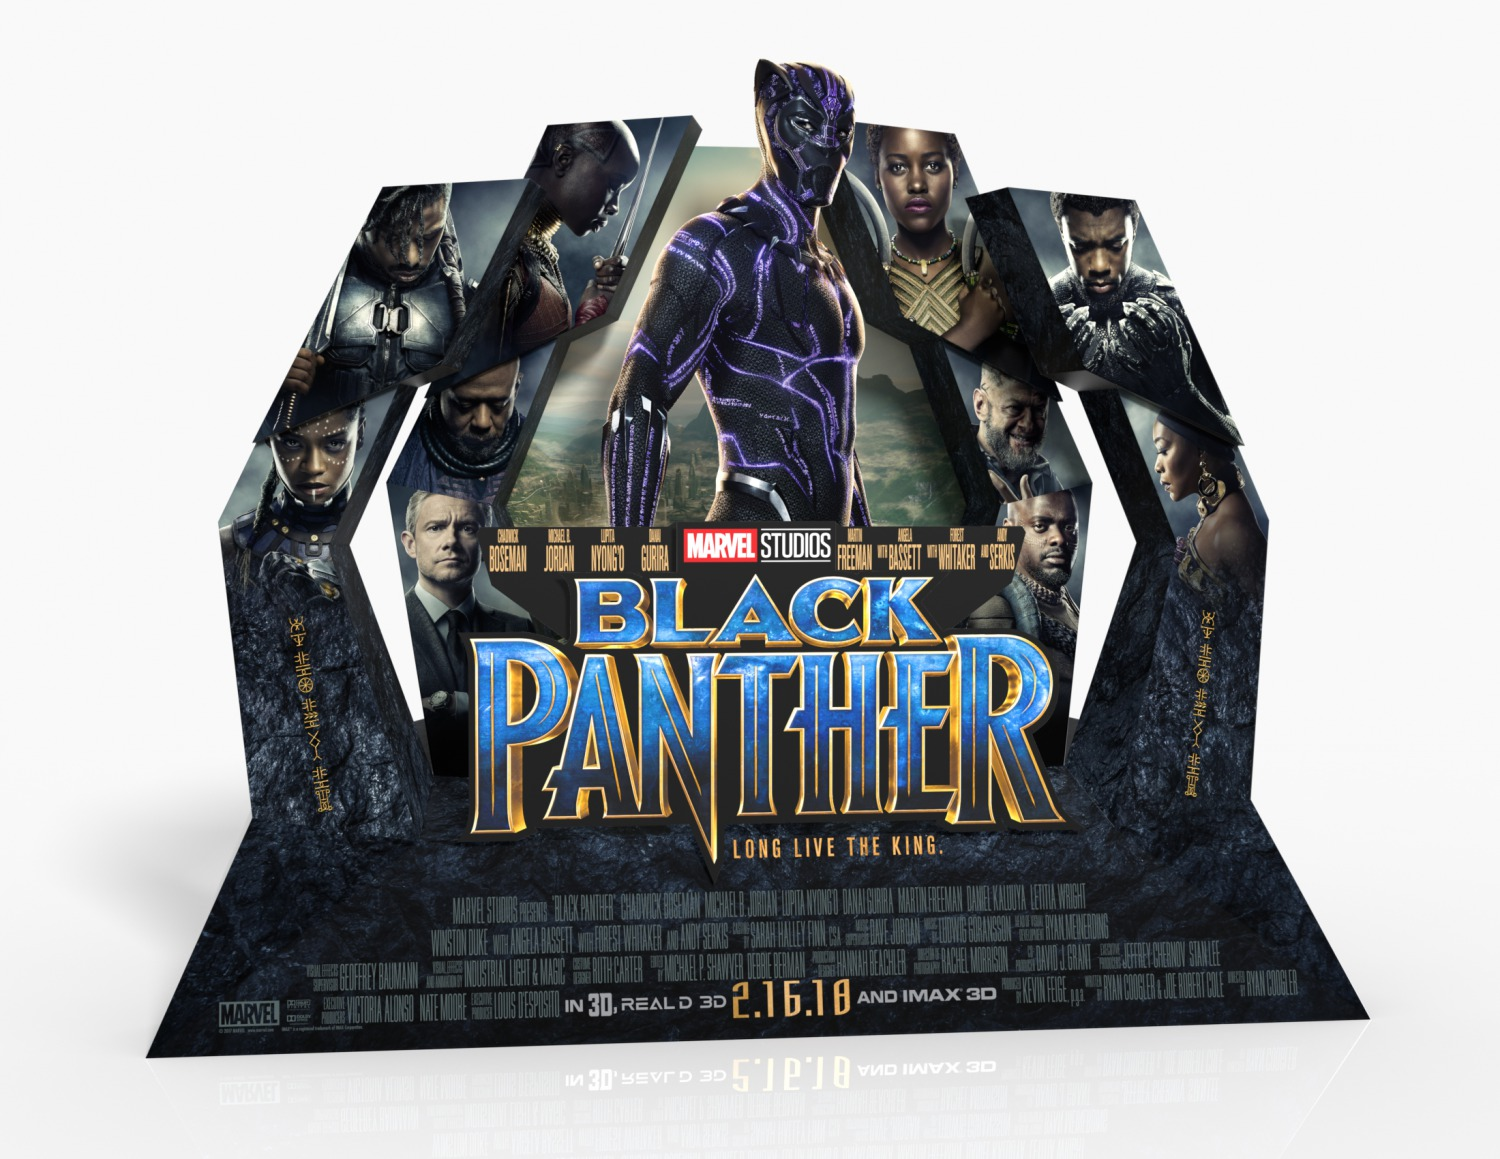 Extra Large Movie Poster Image for Black Panther (#18 of 23)